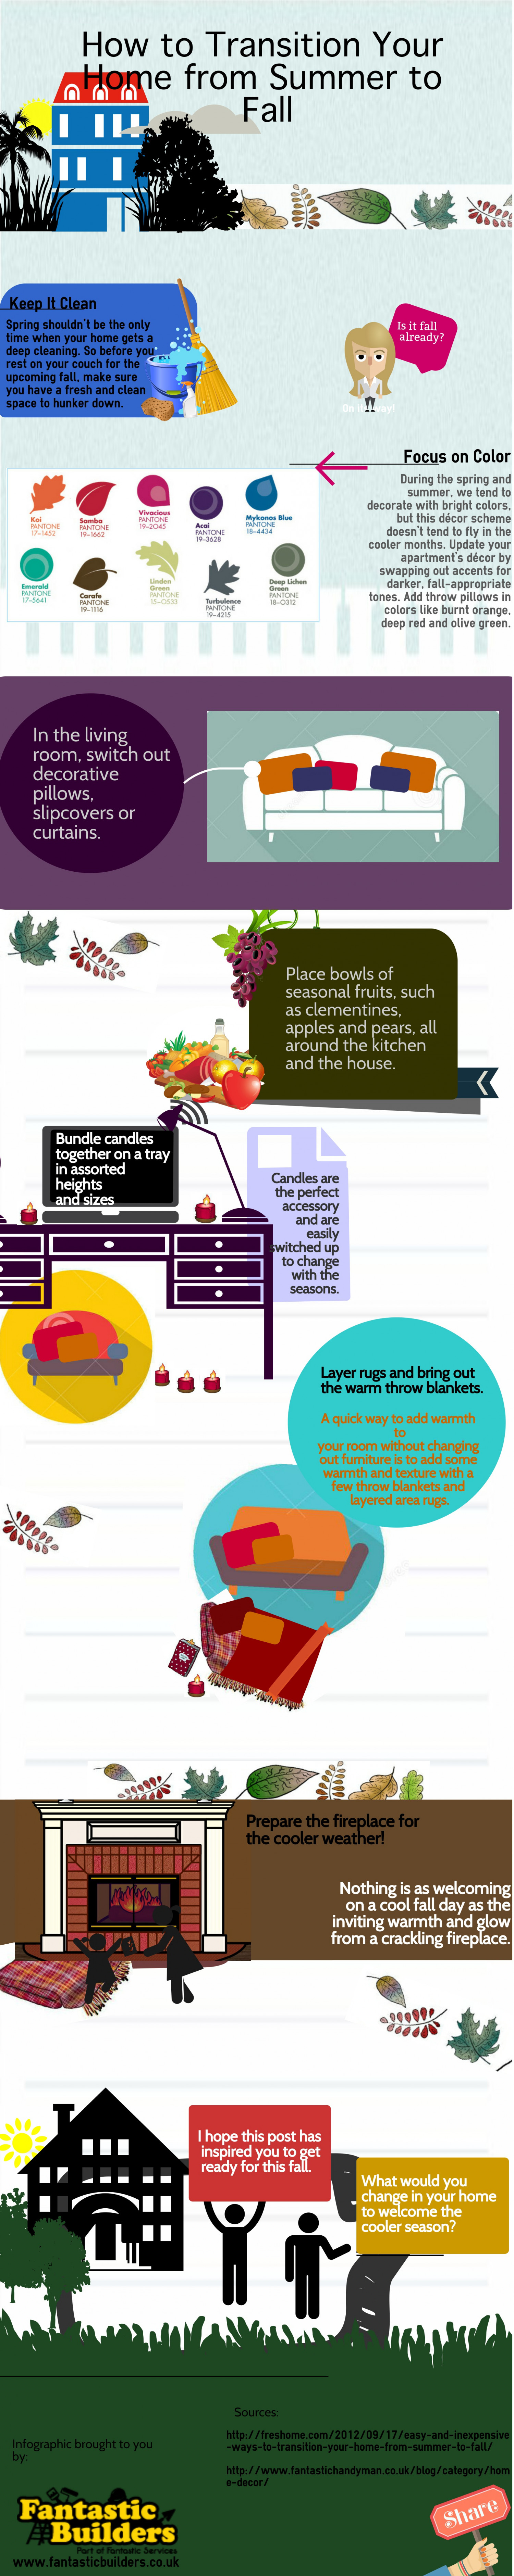 How to Decorate for Fall Season Infographic